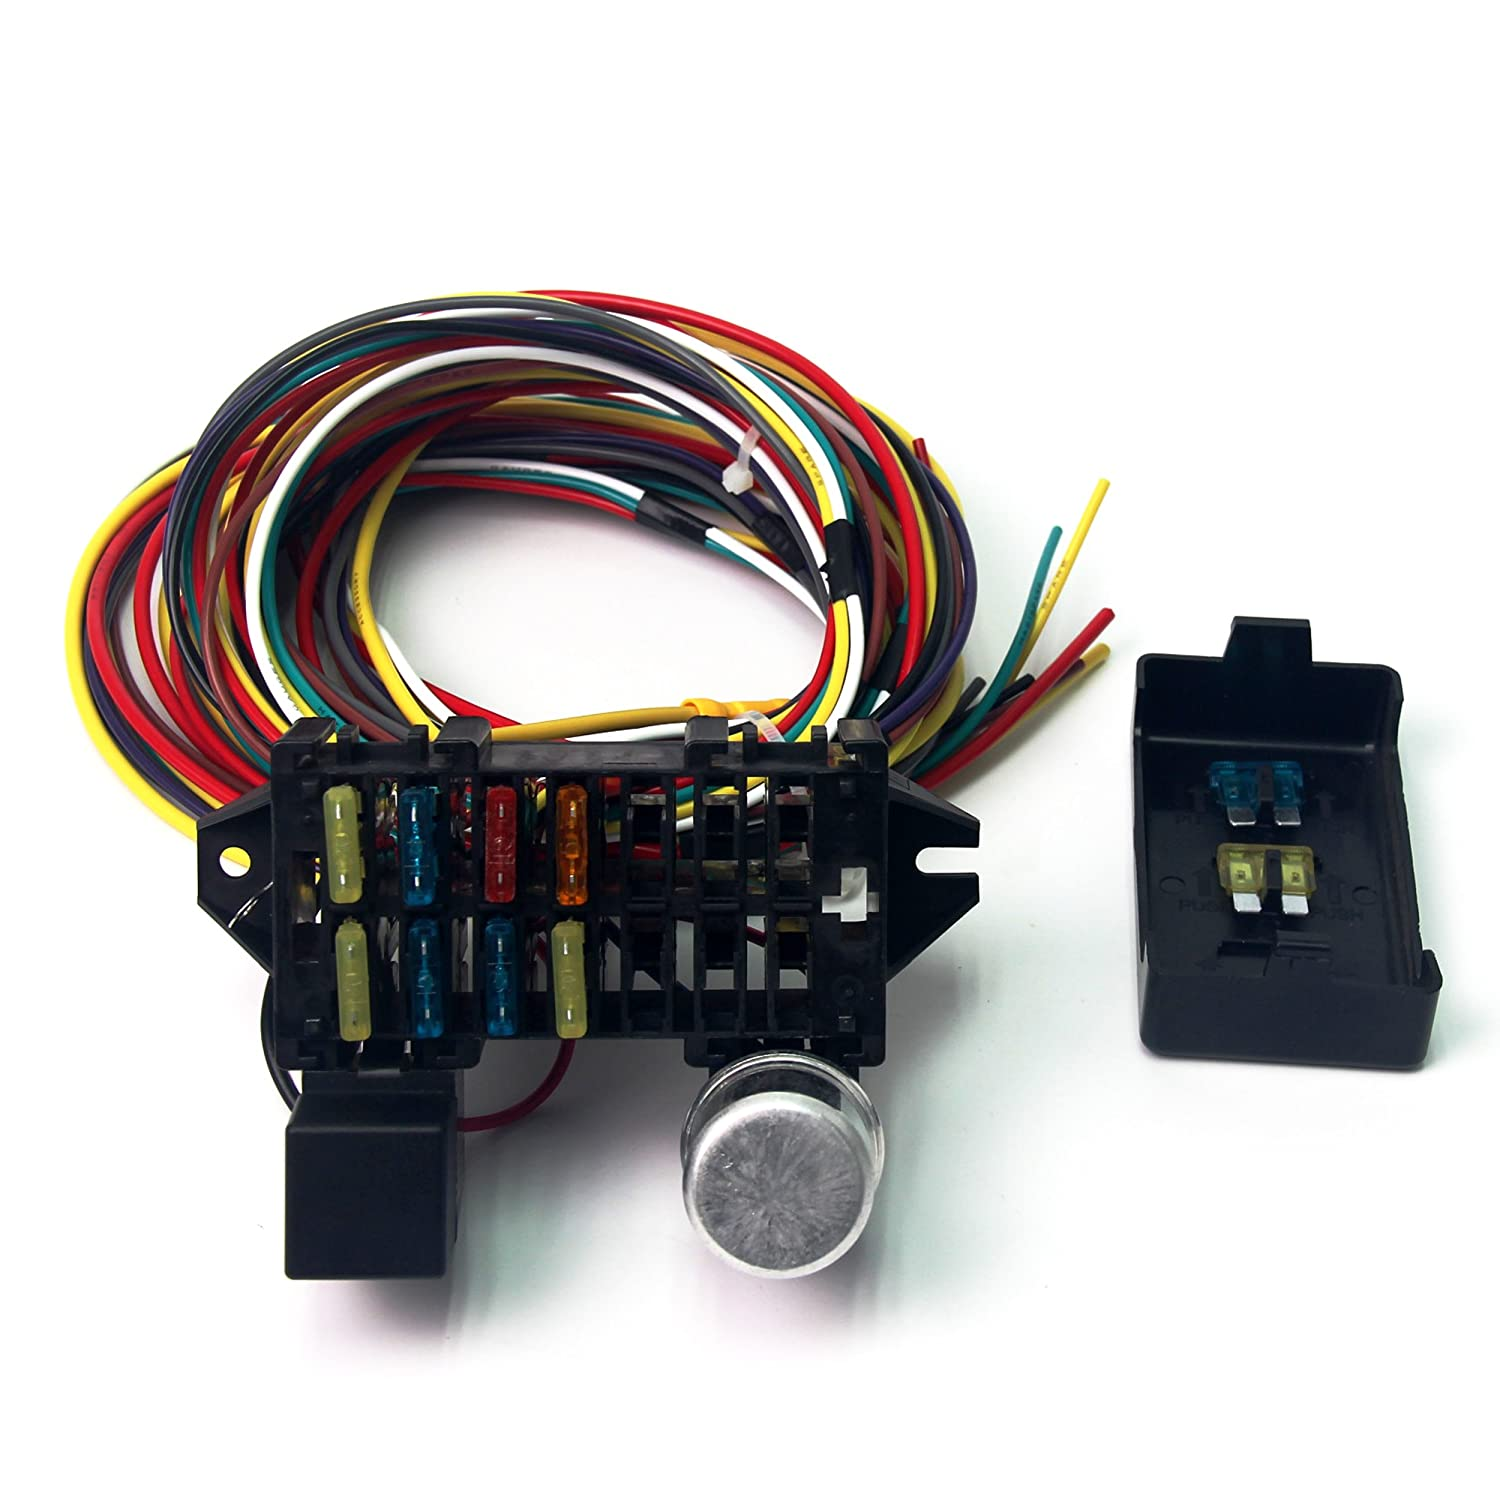 818OhNpuI4L._SL1500_ amazon com wisamic 10 circuit basic wiring harness fuse box street rod universal 14 fuse 12-14 circuit wire harness at bayanpartner.co